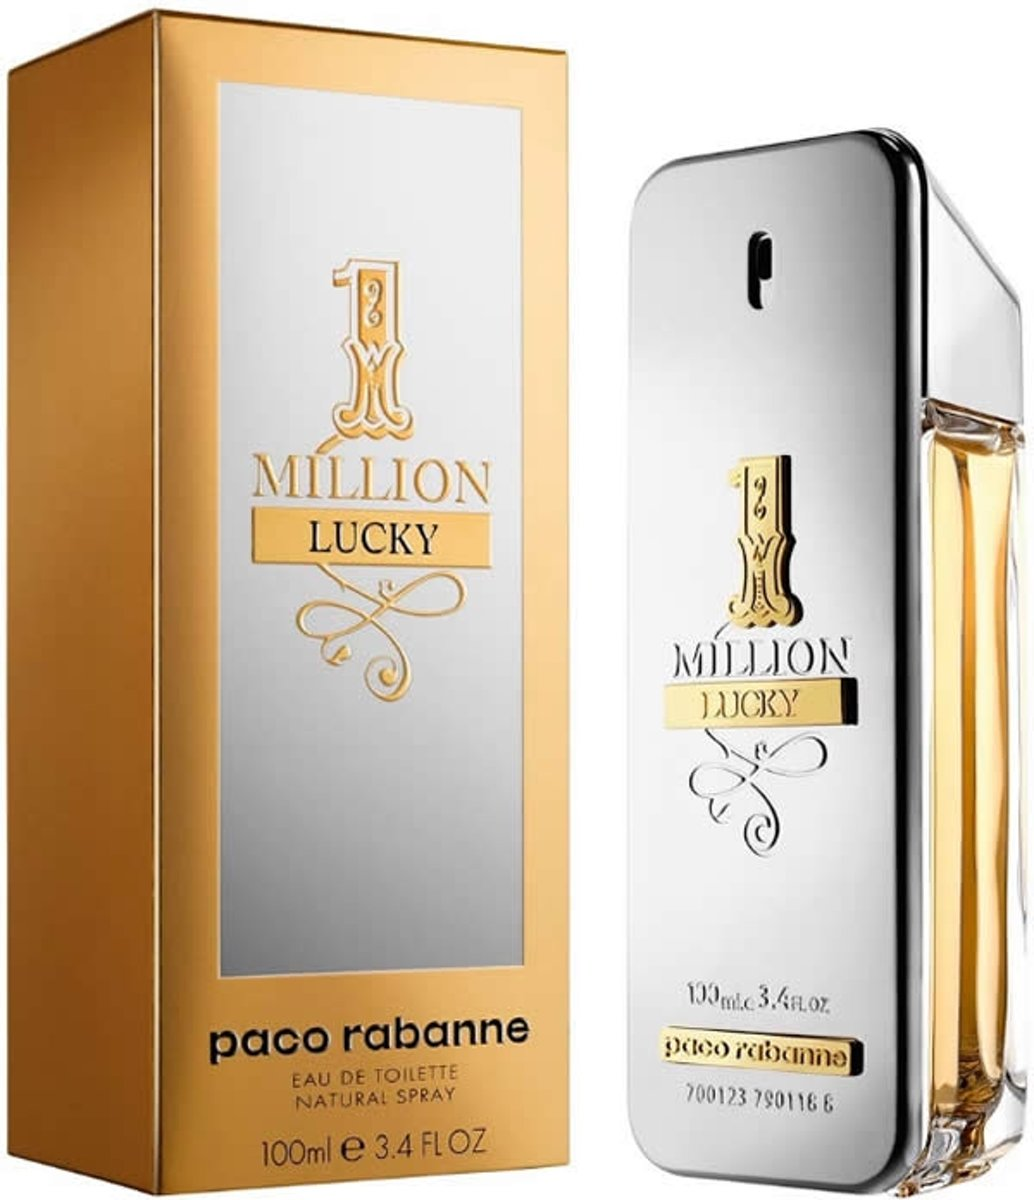 MULTI BUNDEL 2 stuks Paco Rabanne 1 Million Lucky Eau De Toilette Spray 100ml